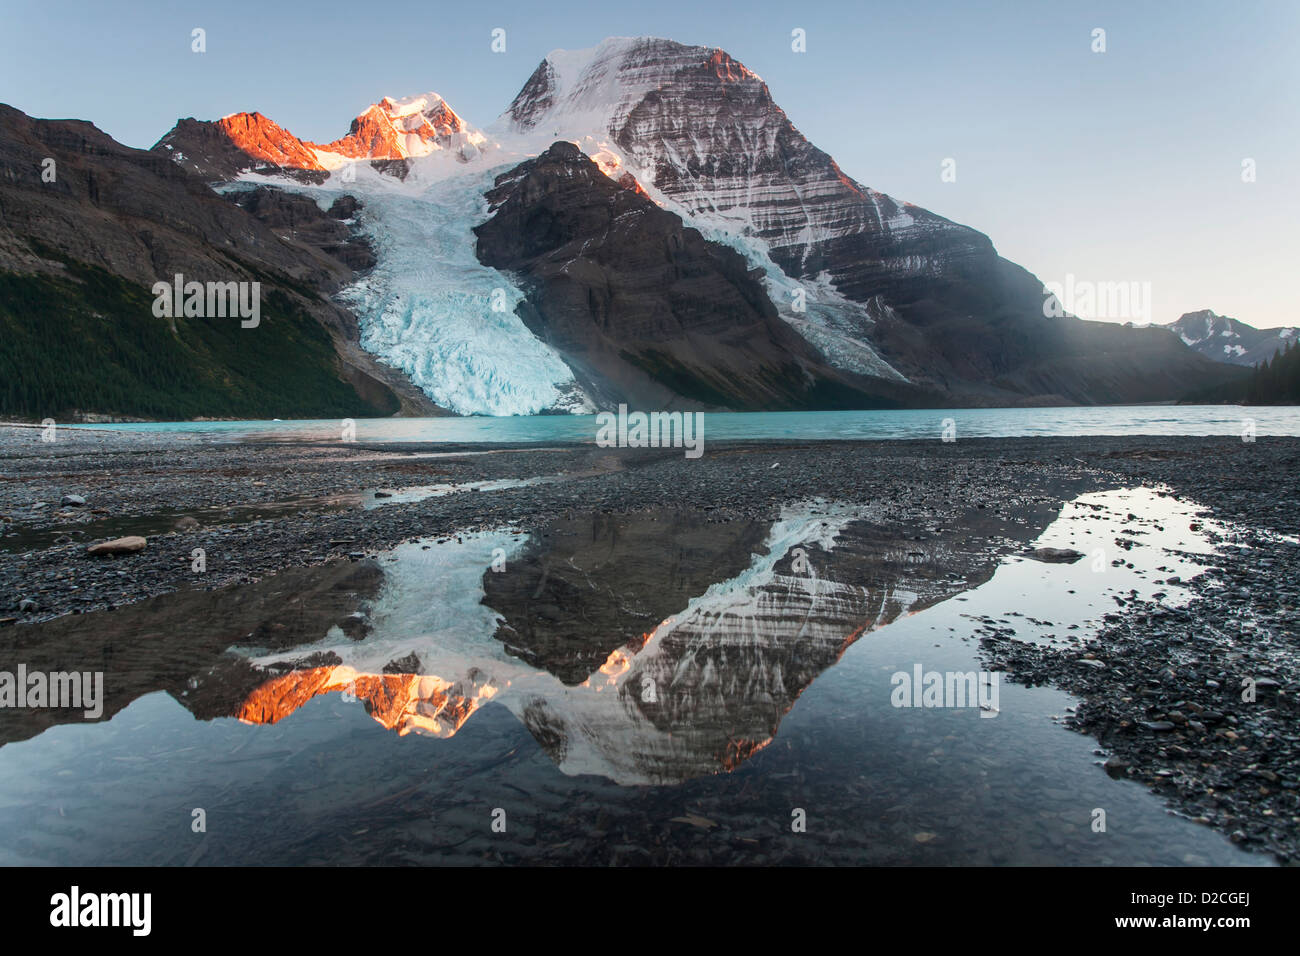 Mount Robson reflected in a pool near Berg Lake, Robson Provincial Park, Canadian Rockies, British Columbia, Canada. Stock Photo